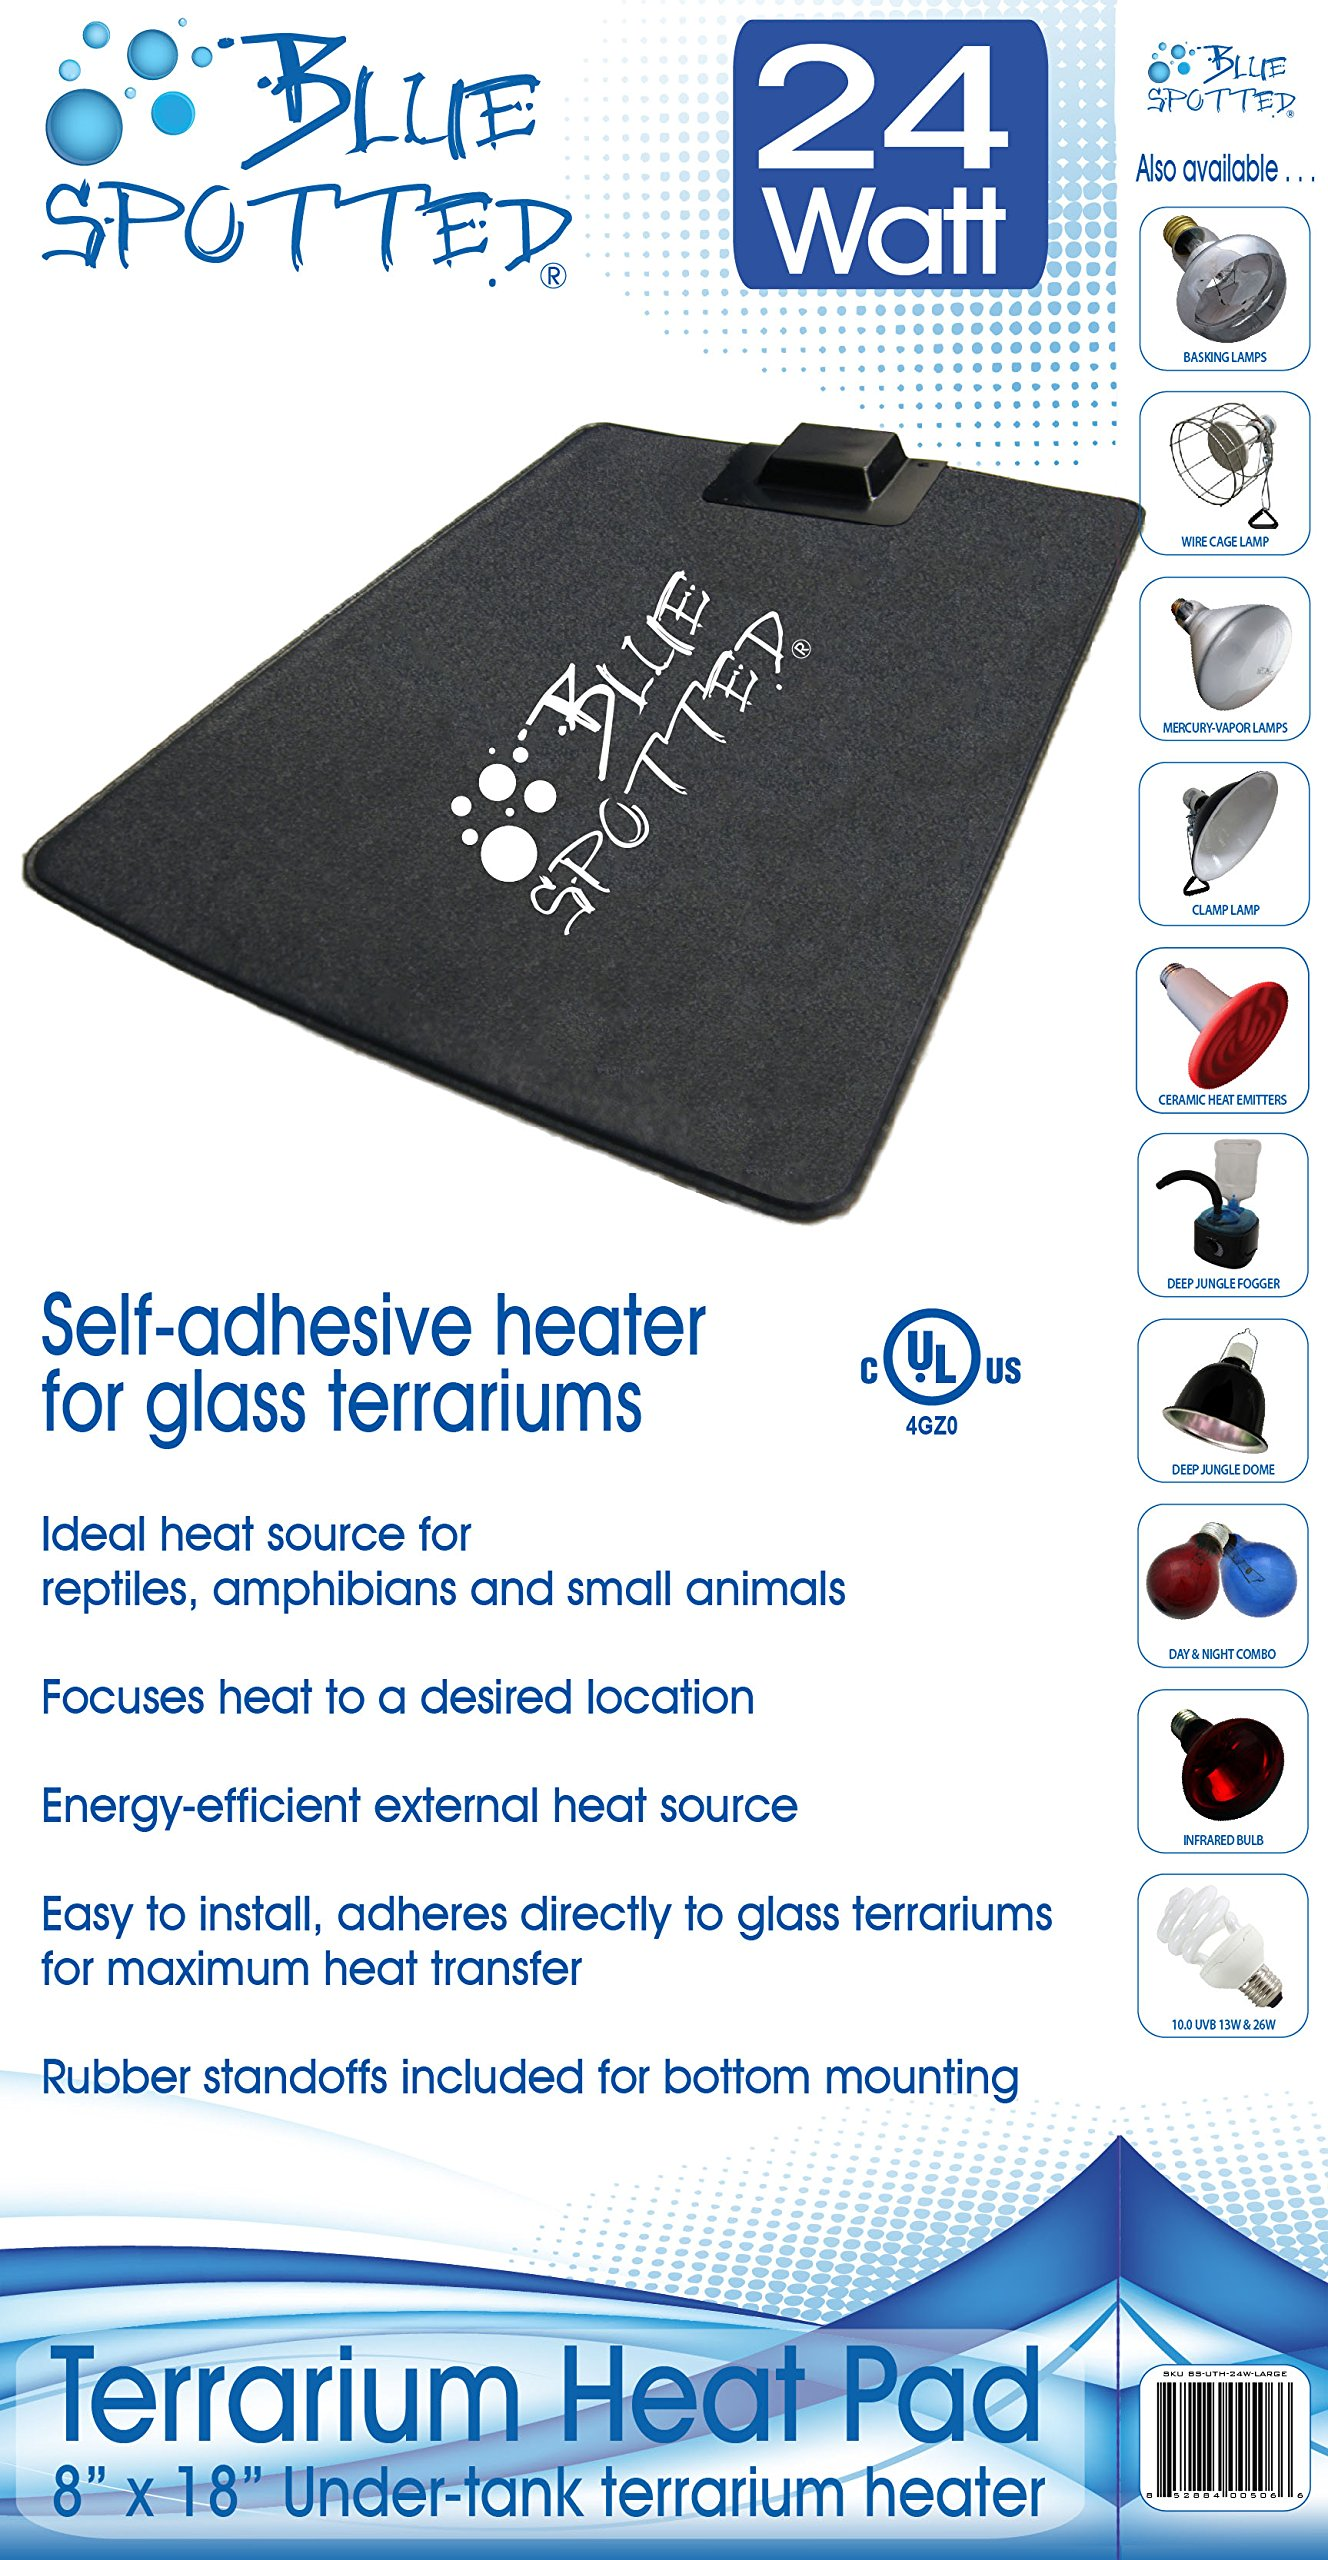 4 Pack Of Blue Spotted Under Tank Heater, Large, For Reptiles, Amphibians & Small Animals & Use with Glass Terrariums - Size Large - 8'' x 18'' - No Hassle Packaging